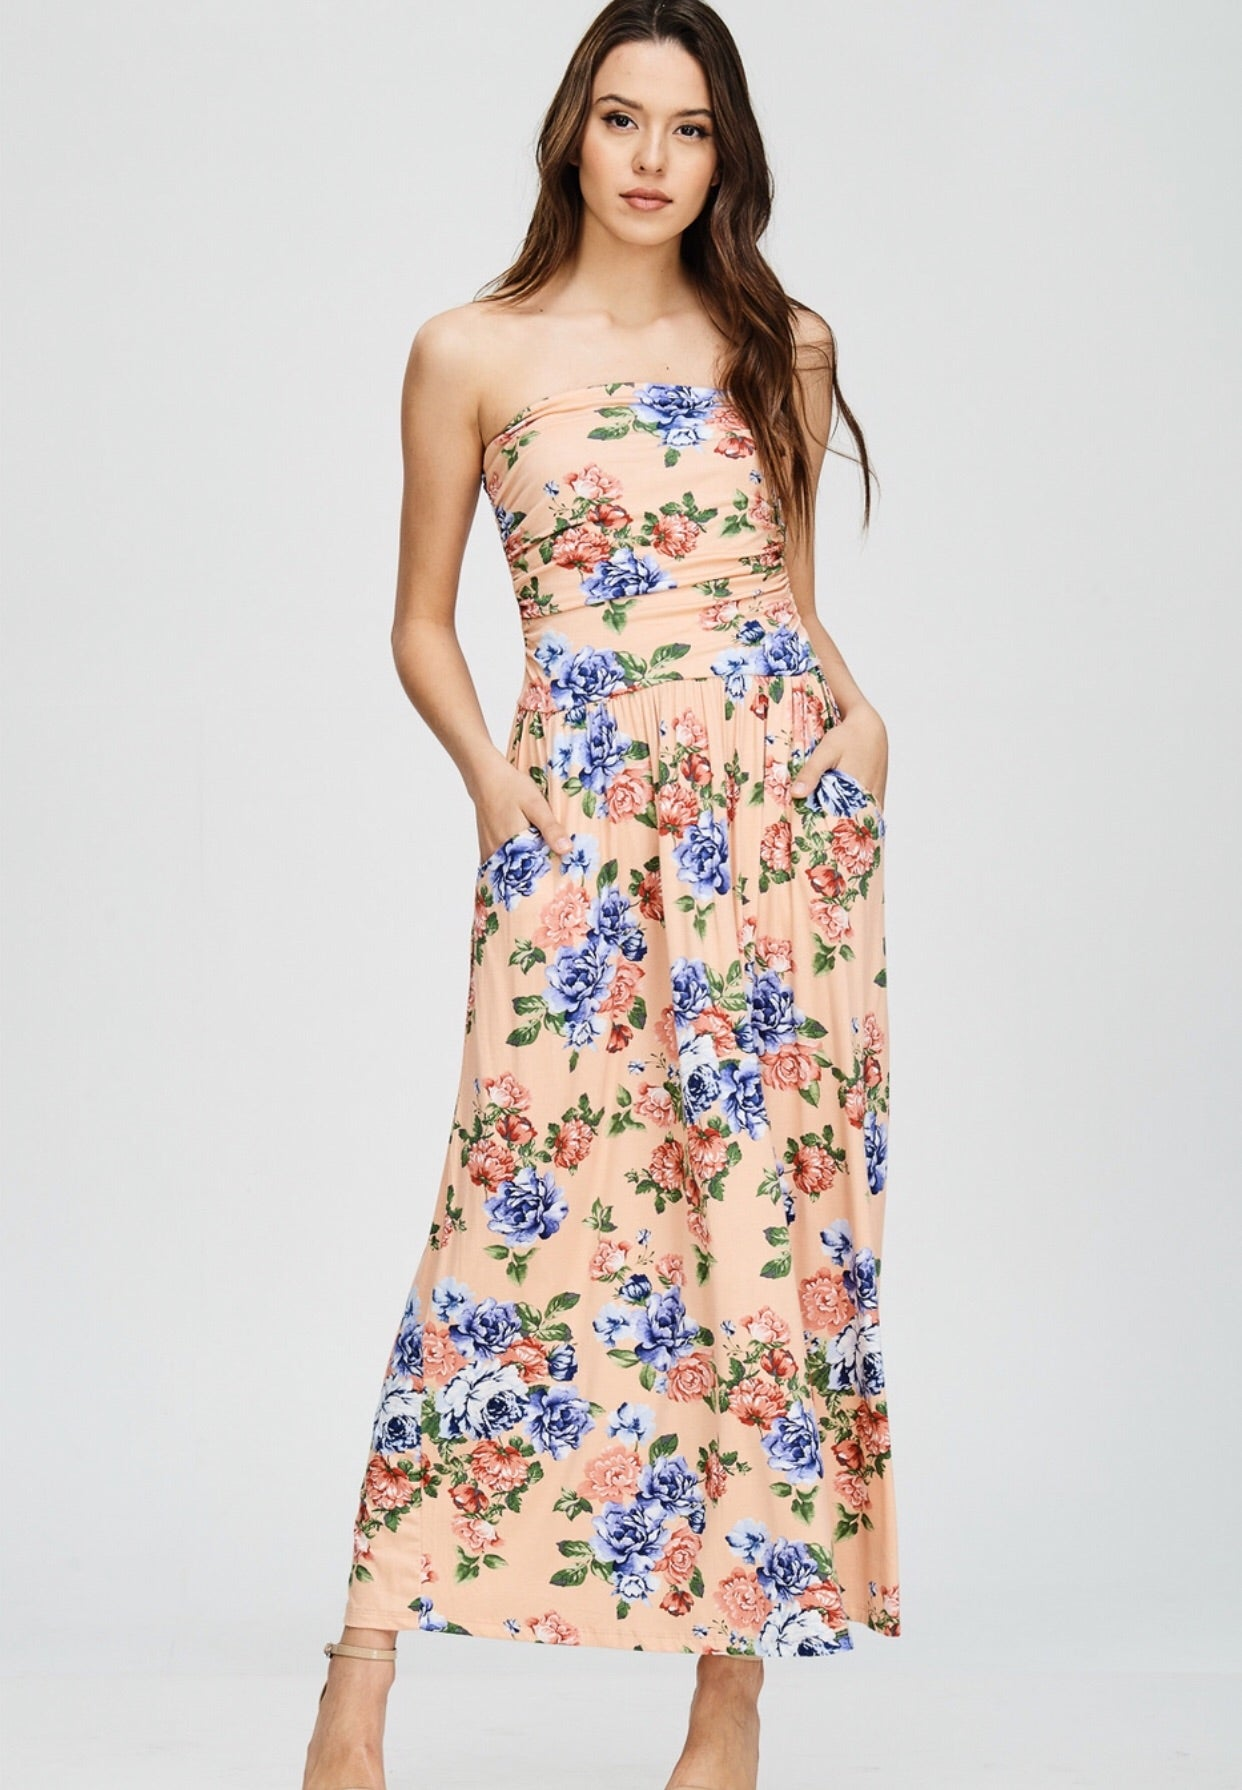 Tube top floral dress with pockets